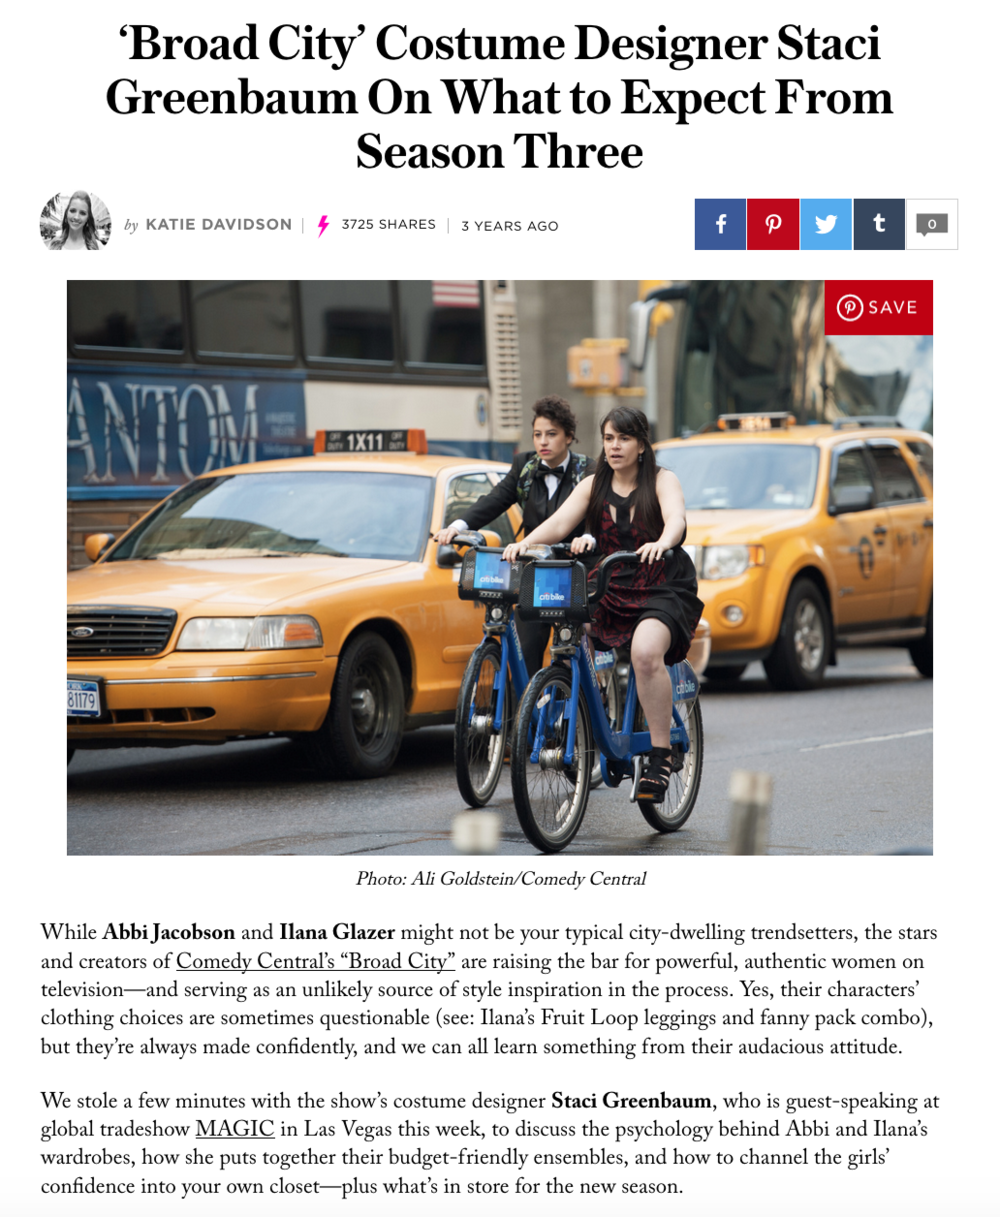 STYLECASTER.COM    'BROAD CITY' COSTUME DESIGner STACI GREENBAUM ON WHAT TO EXPECT FROM SEASON 3    AUGUST 2015